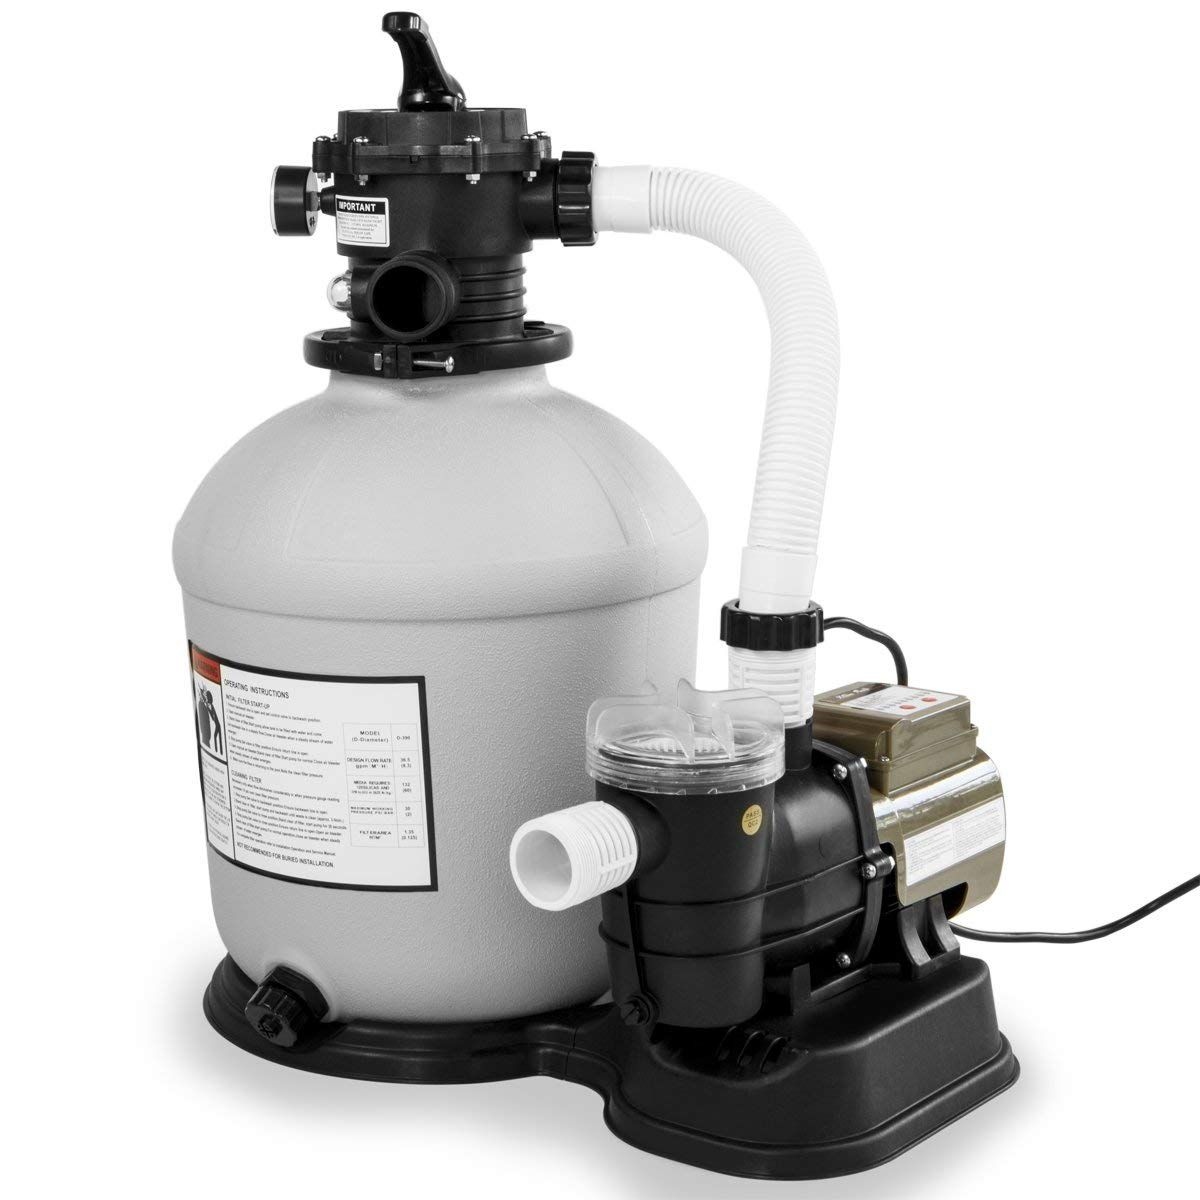 Xtremepowerus Swimming Pool 16 Sand Filter With 3100gph 3 4 Hp Pool Pump Pool Sand Pool Pump In Ground Pools